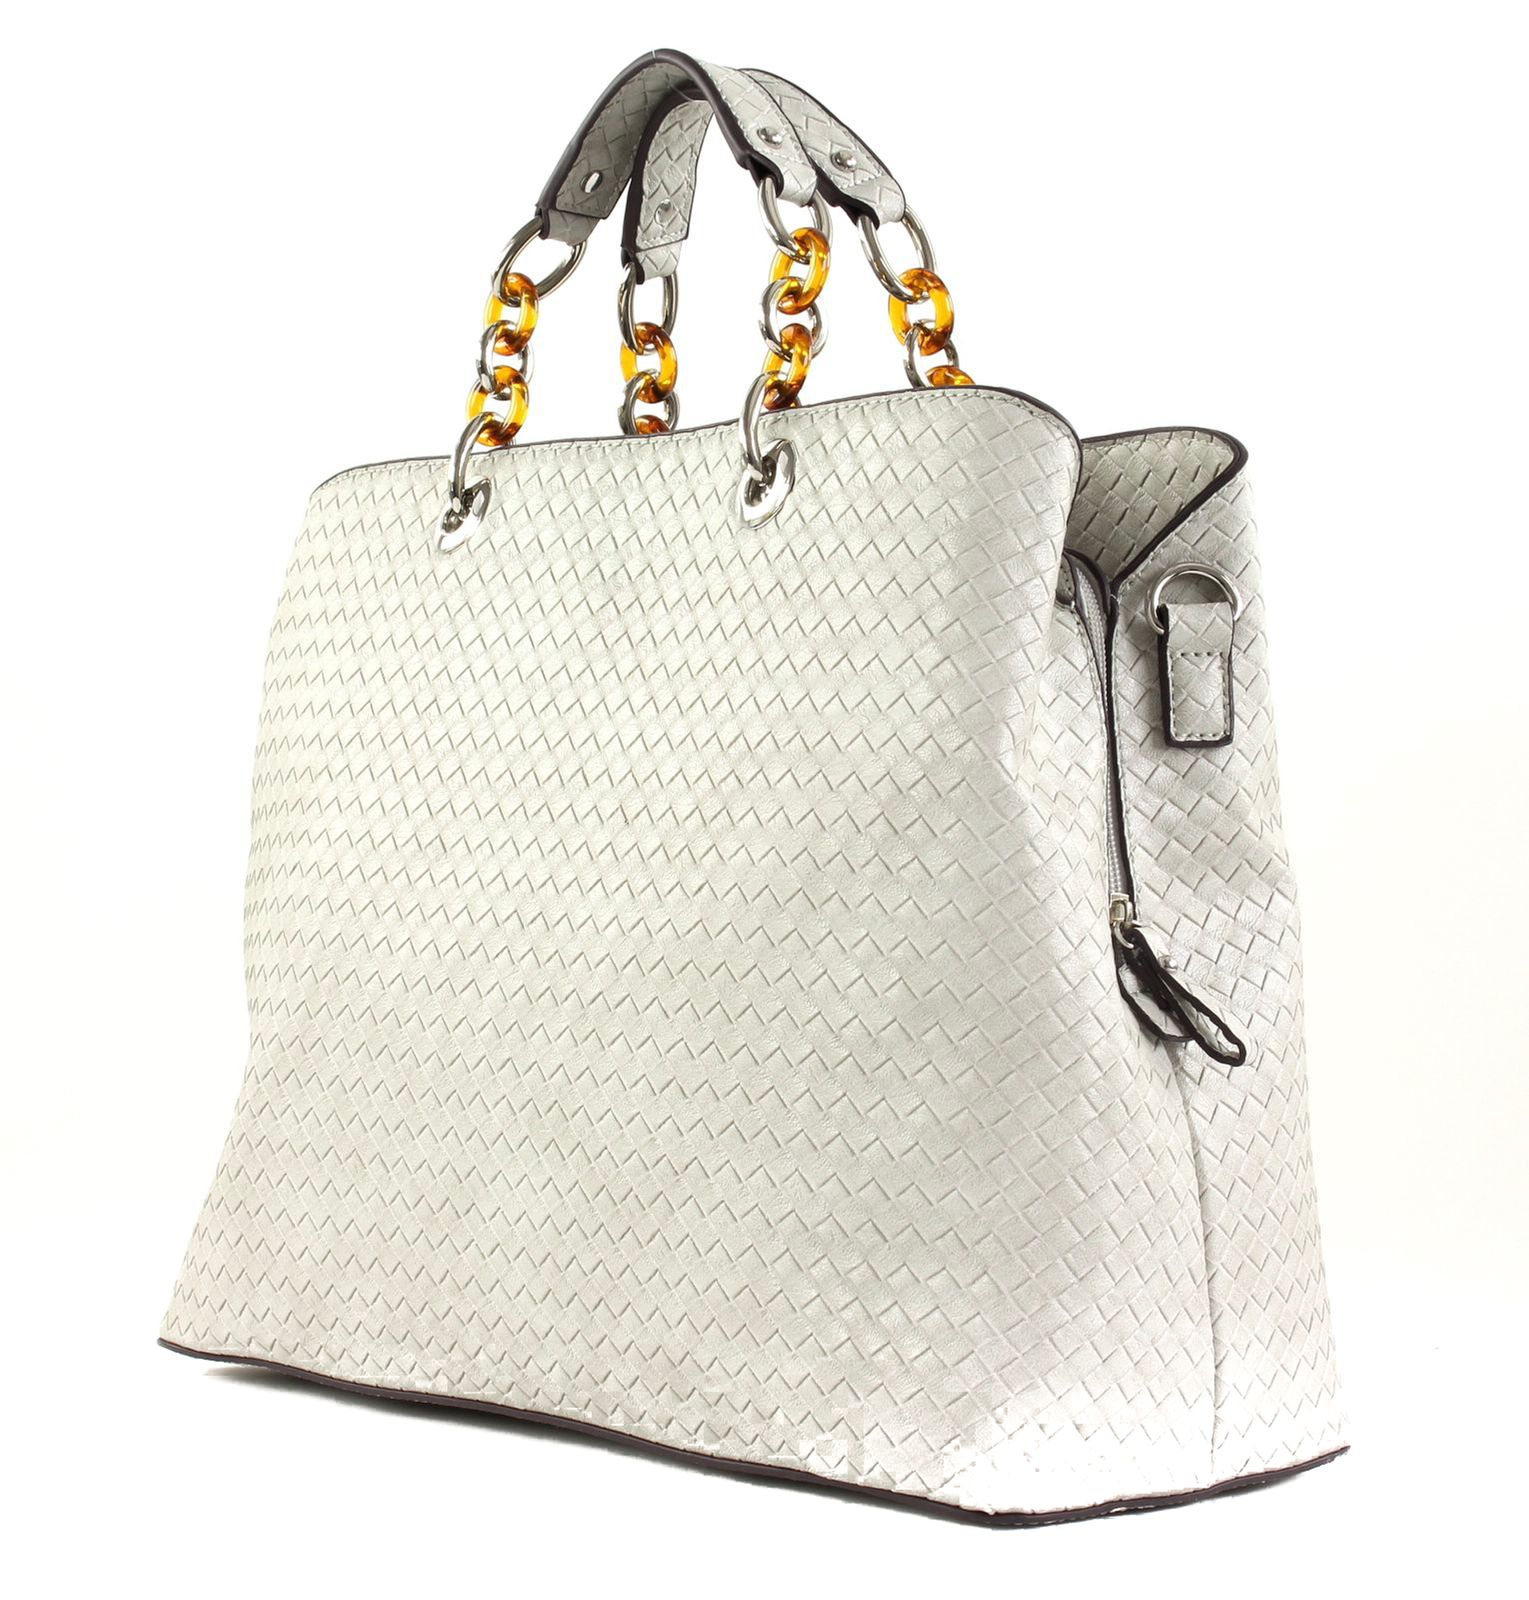 Details about Tamaris Handbag RANIA Business Bag Grey